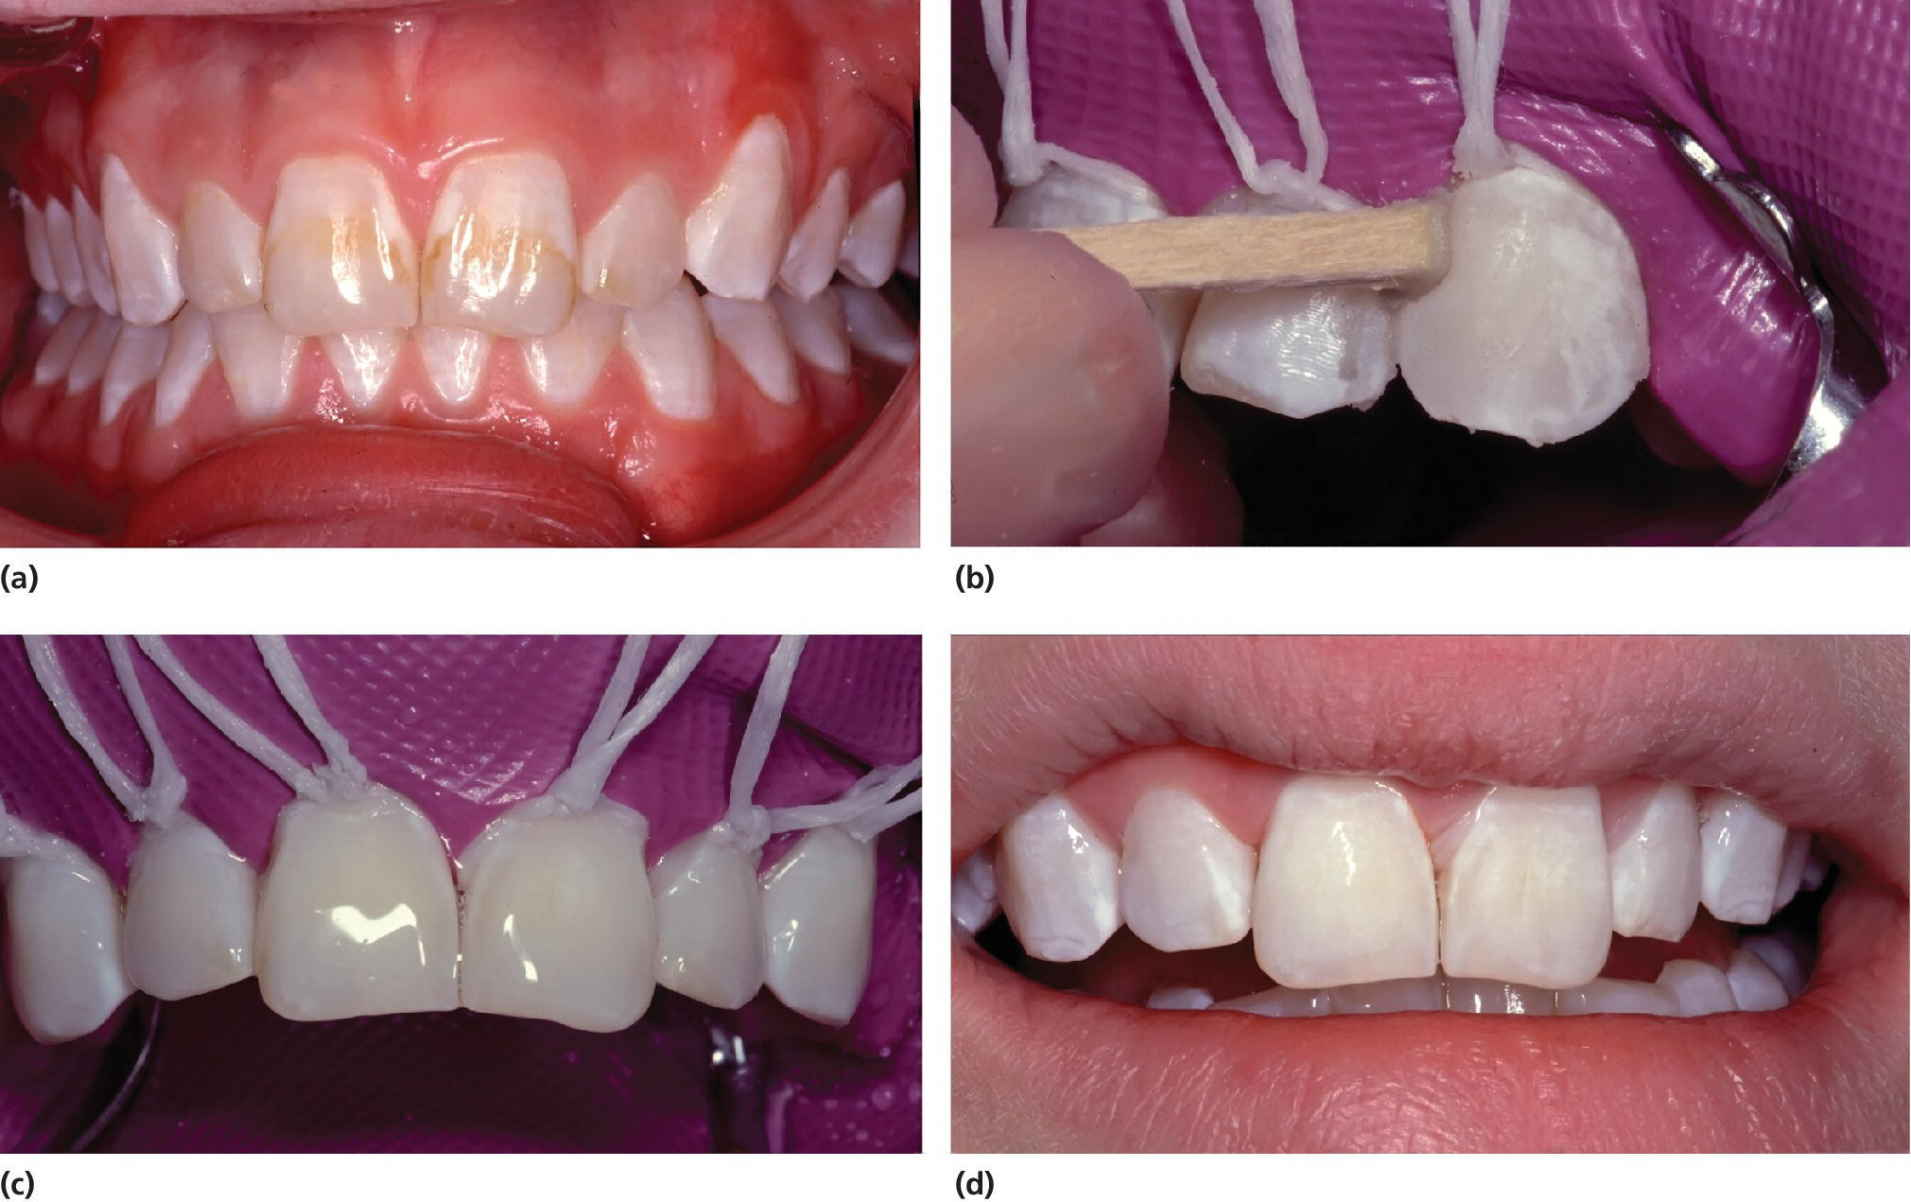 4 Photos of teeth of a 14-year-old girl, displaying mild dental fluorosis, the surface rubbed using a wooden pin and covered by sodium fluoride gel, and the treatment result.